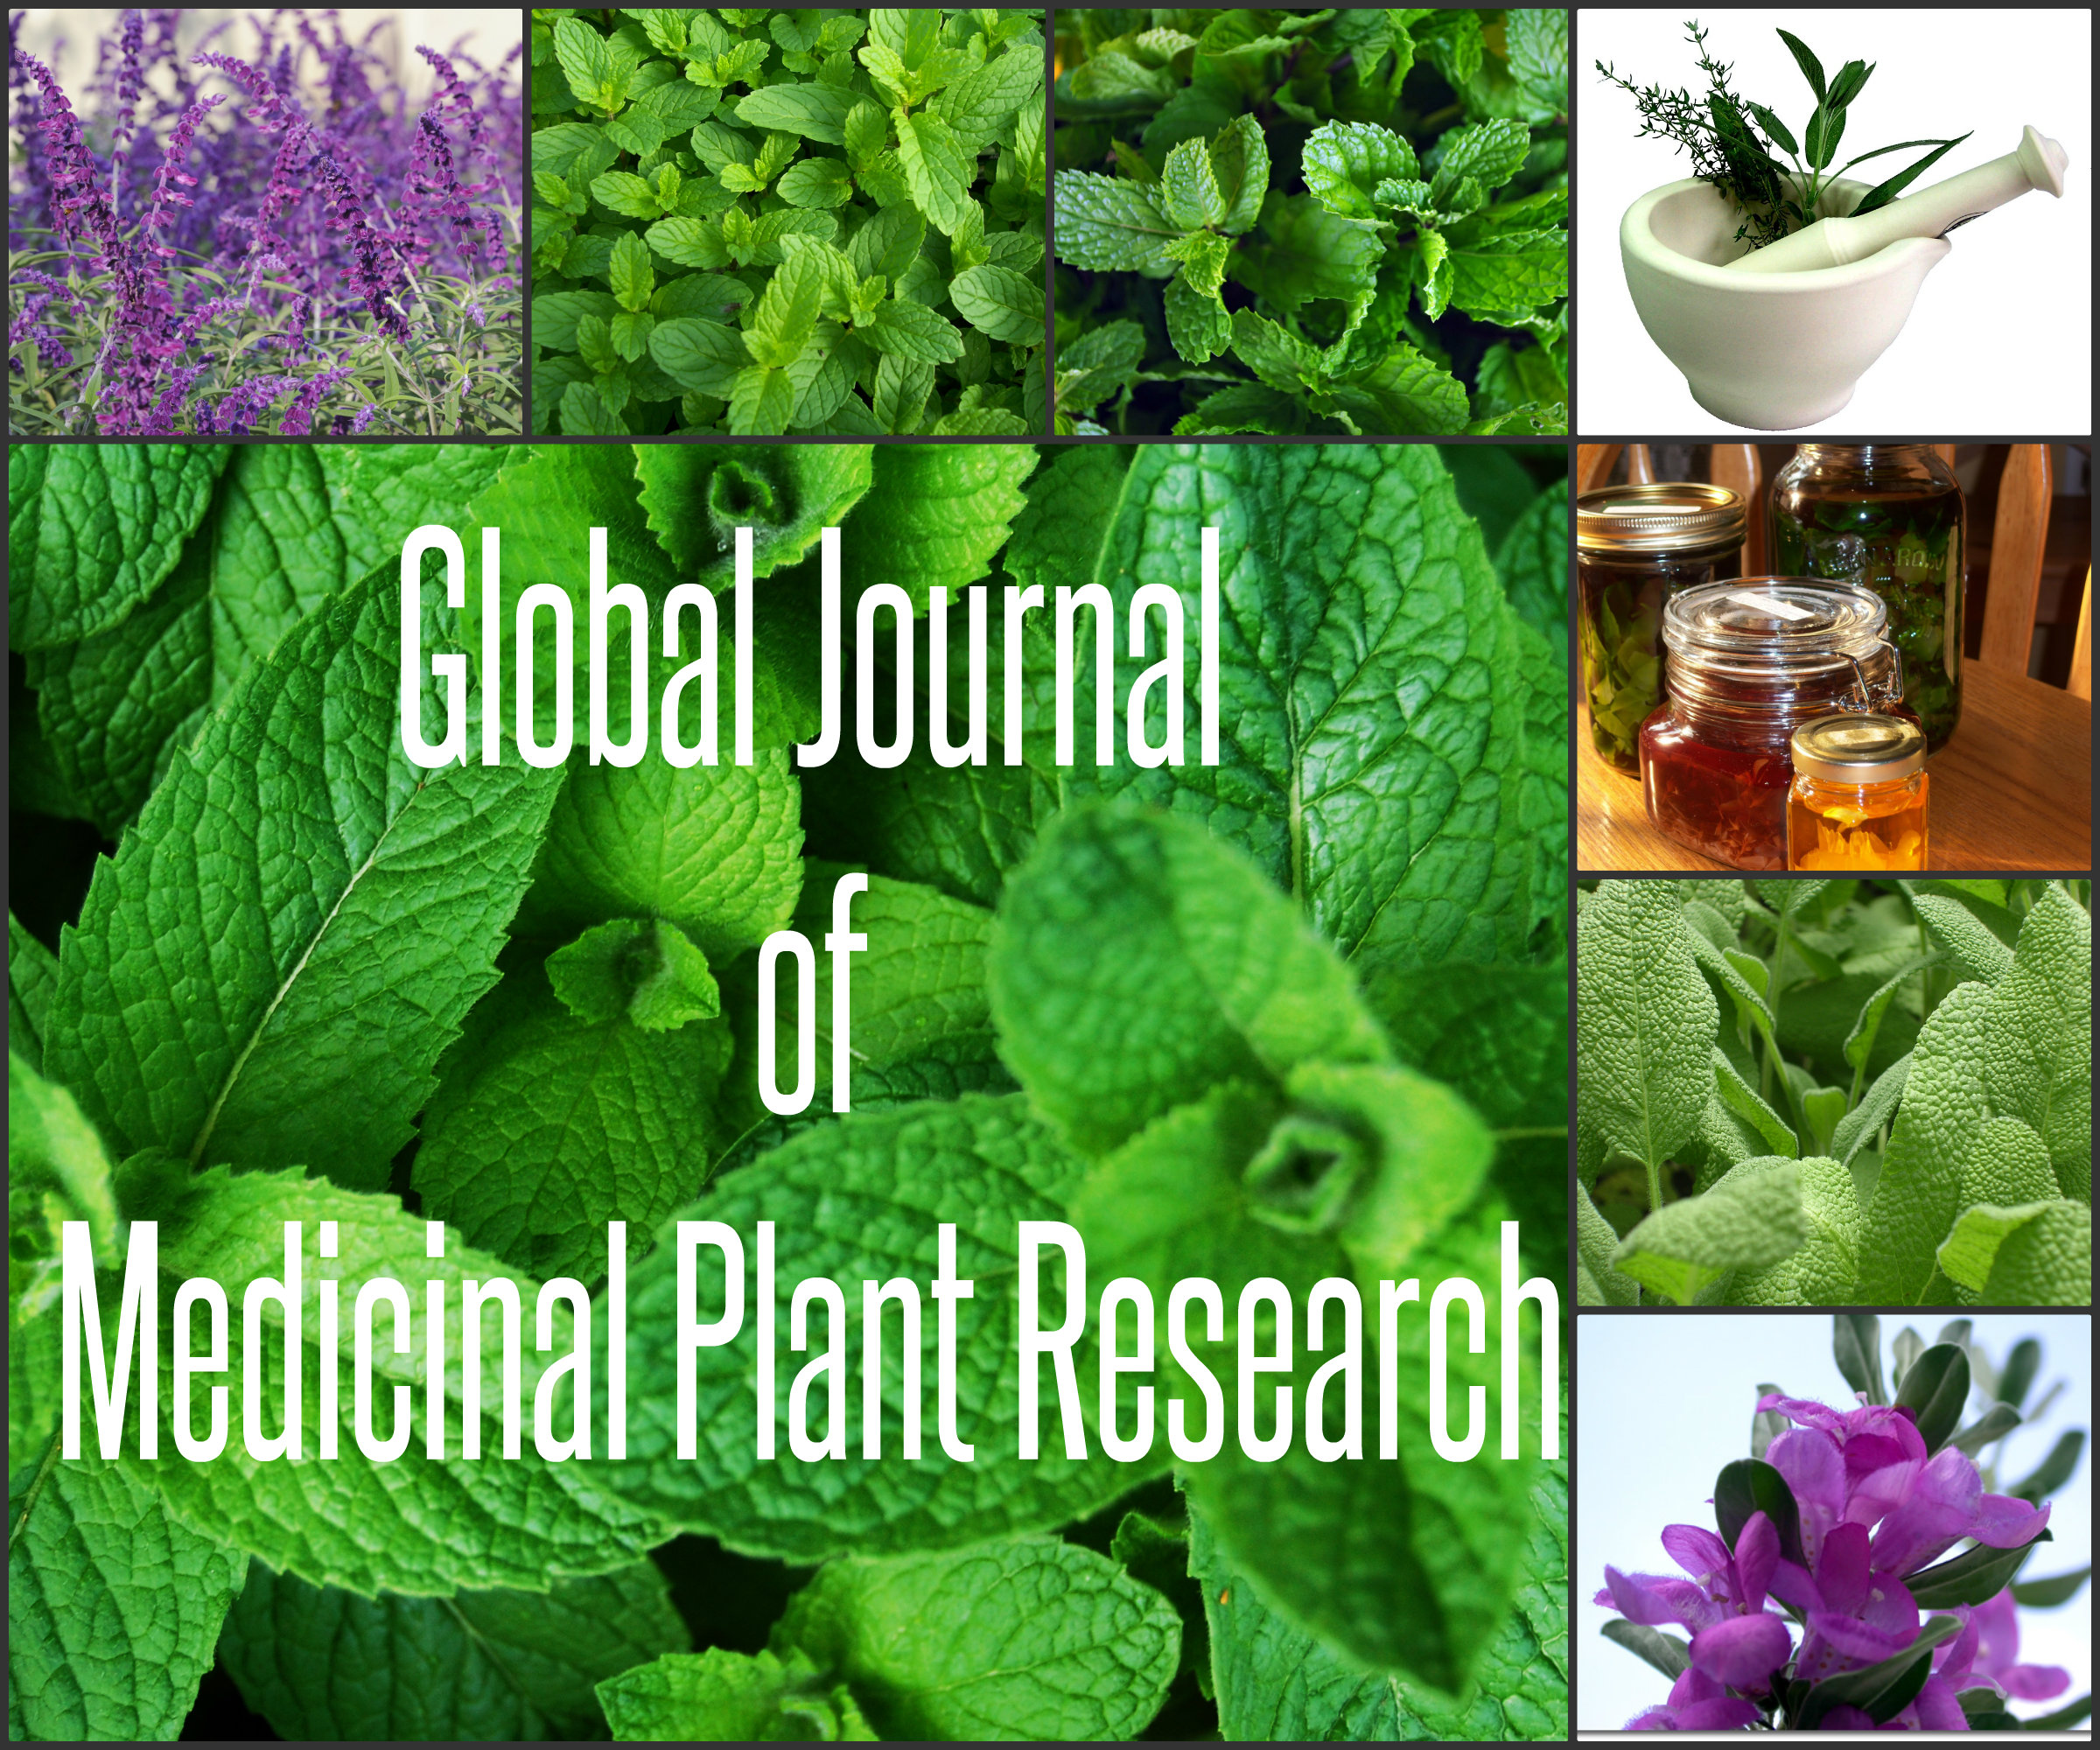 msc thesis on antimicrobial activity of medicinal plants